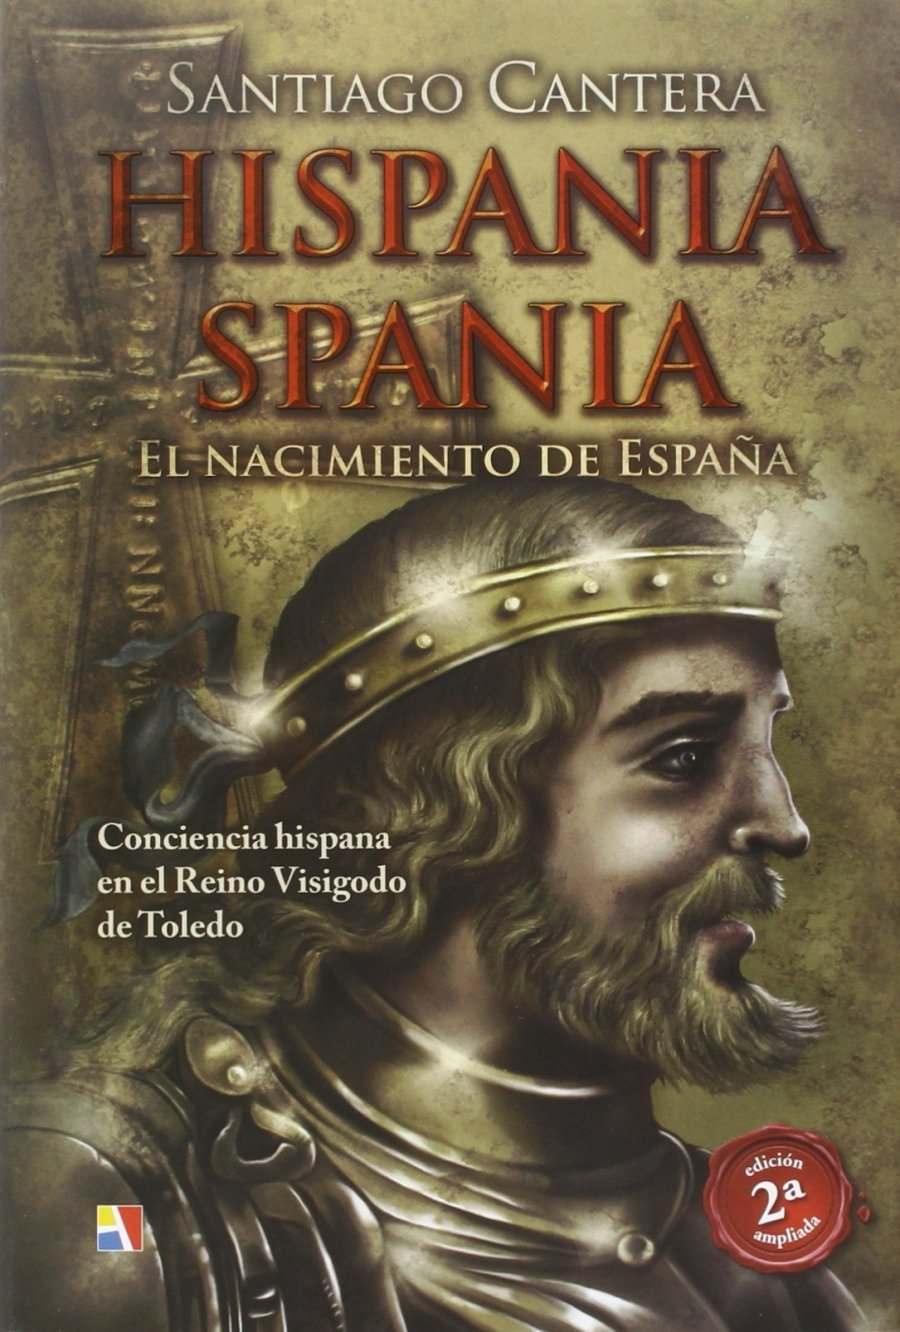 Hispania - Spania Book Cover